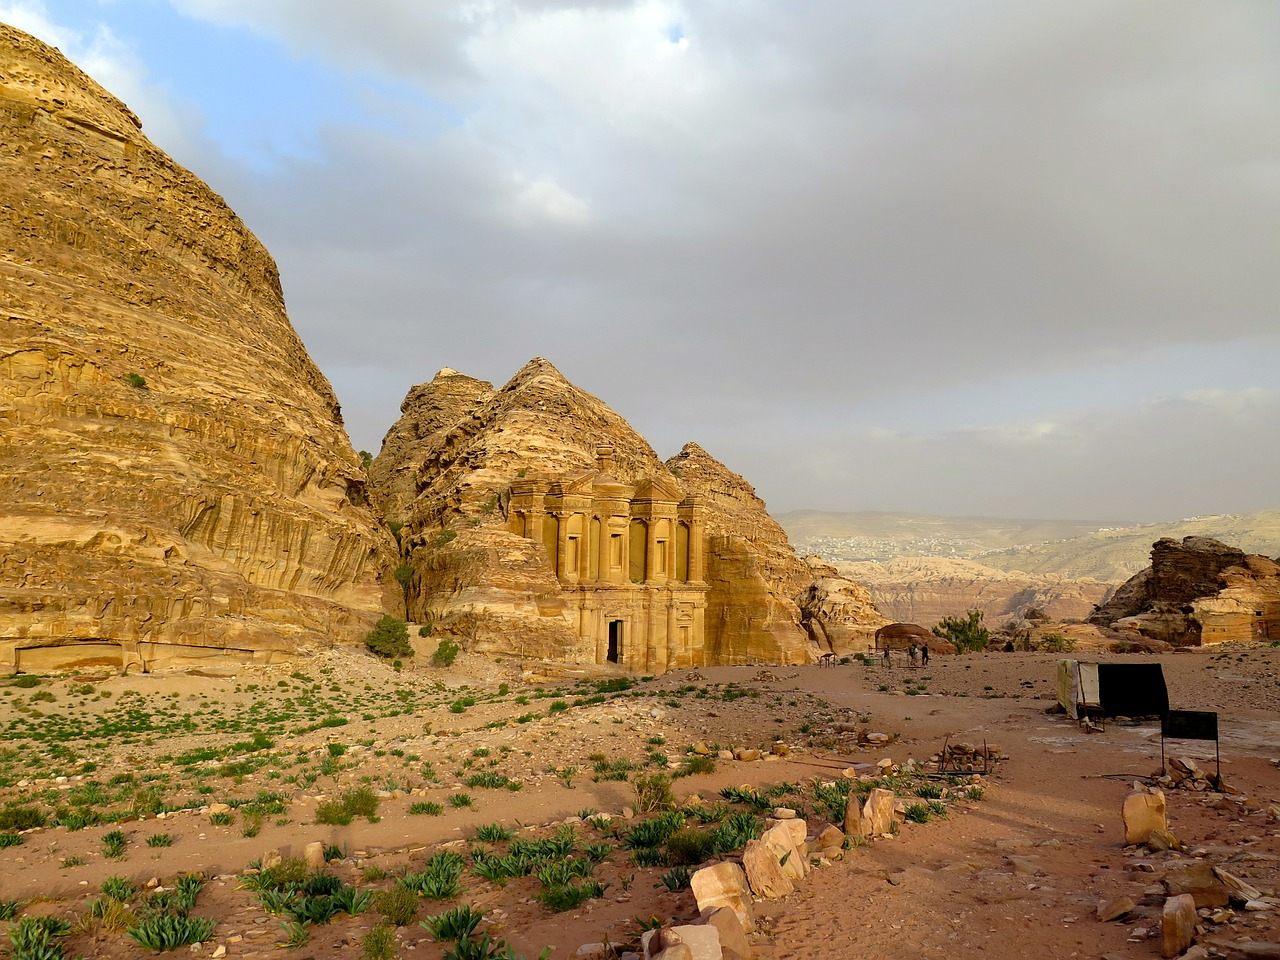 Arriving in Petra